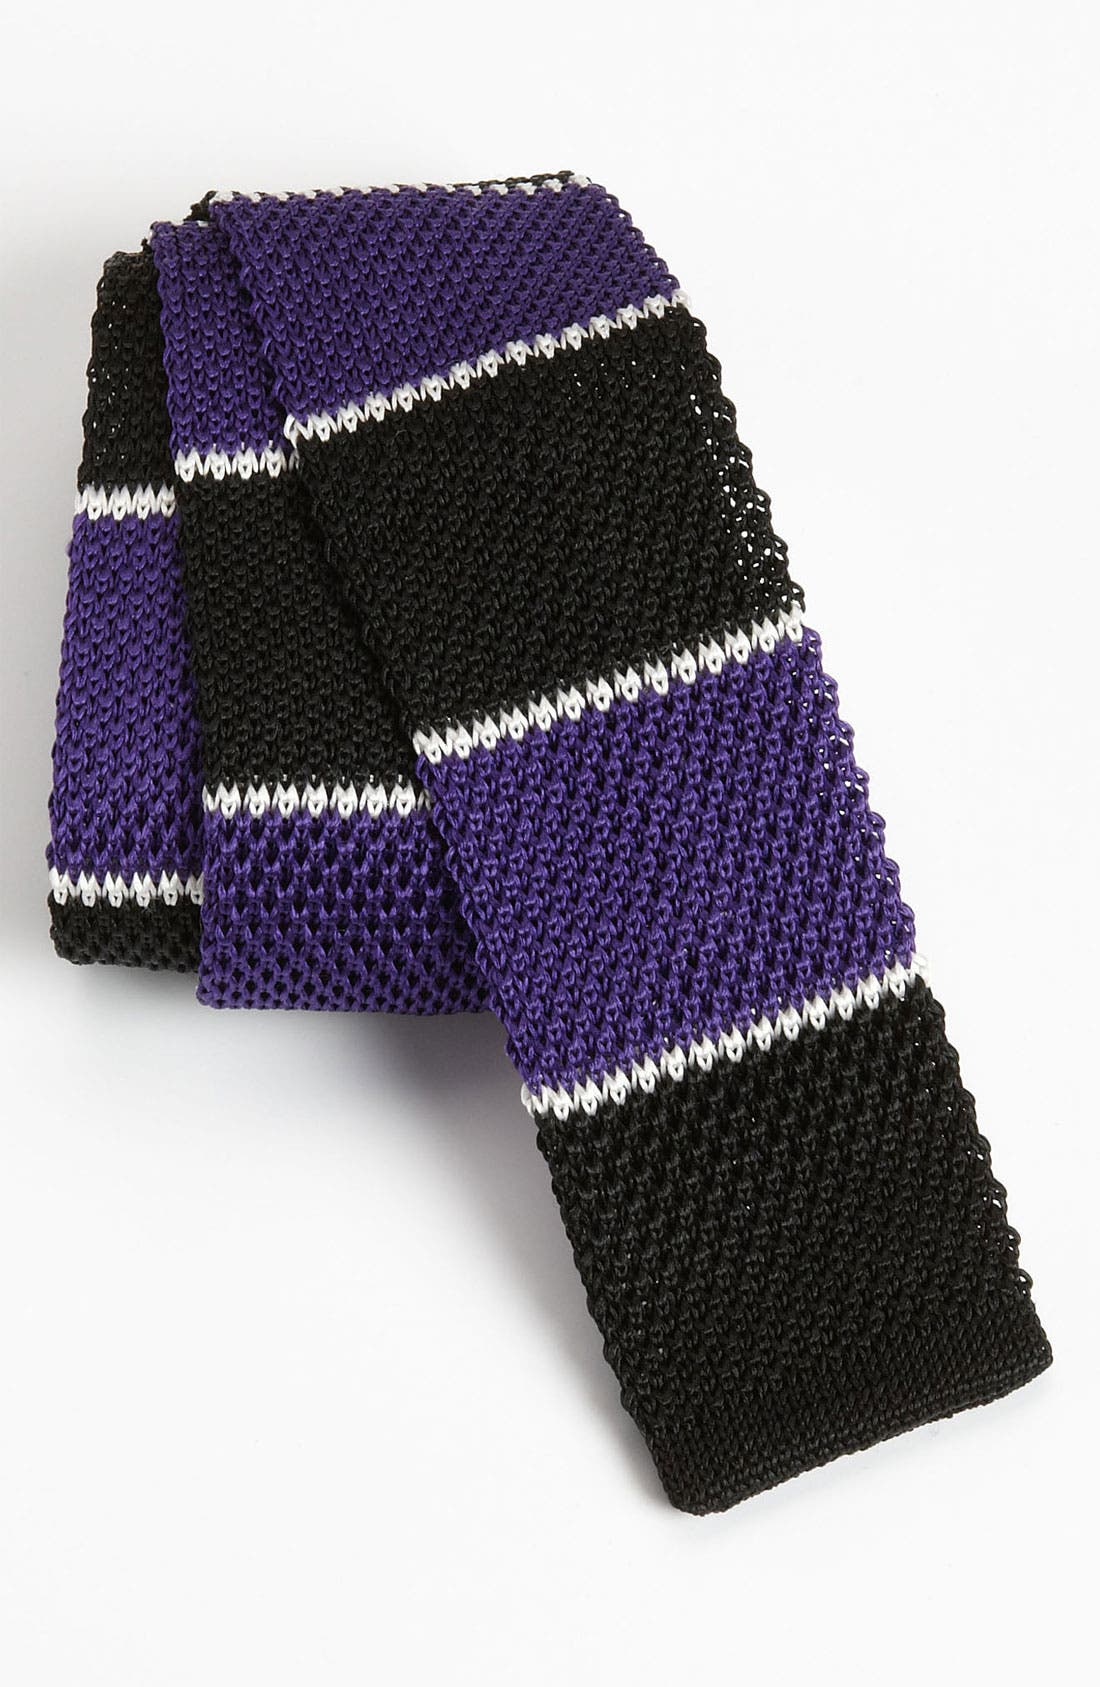 Alternate Image 1 Selected - The Tie Bar 'School Stripe' Knit Tie (Online Only)